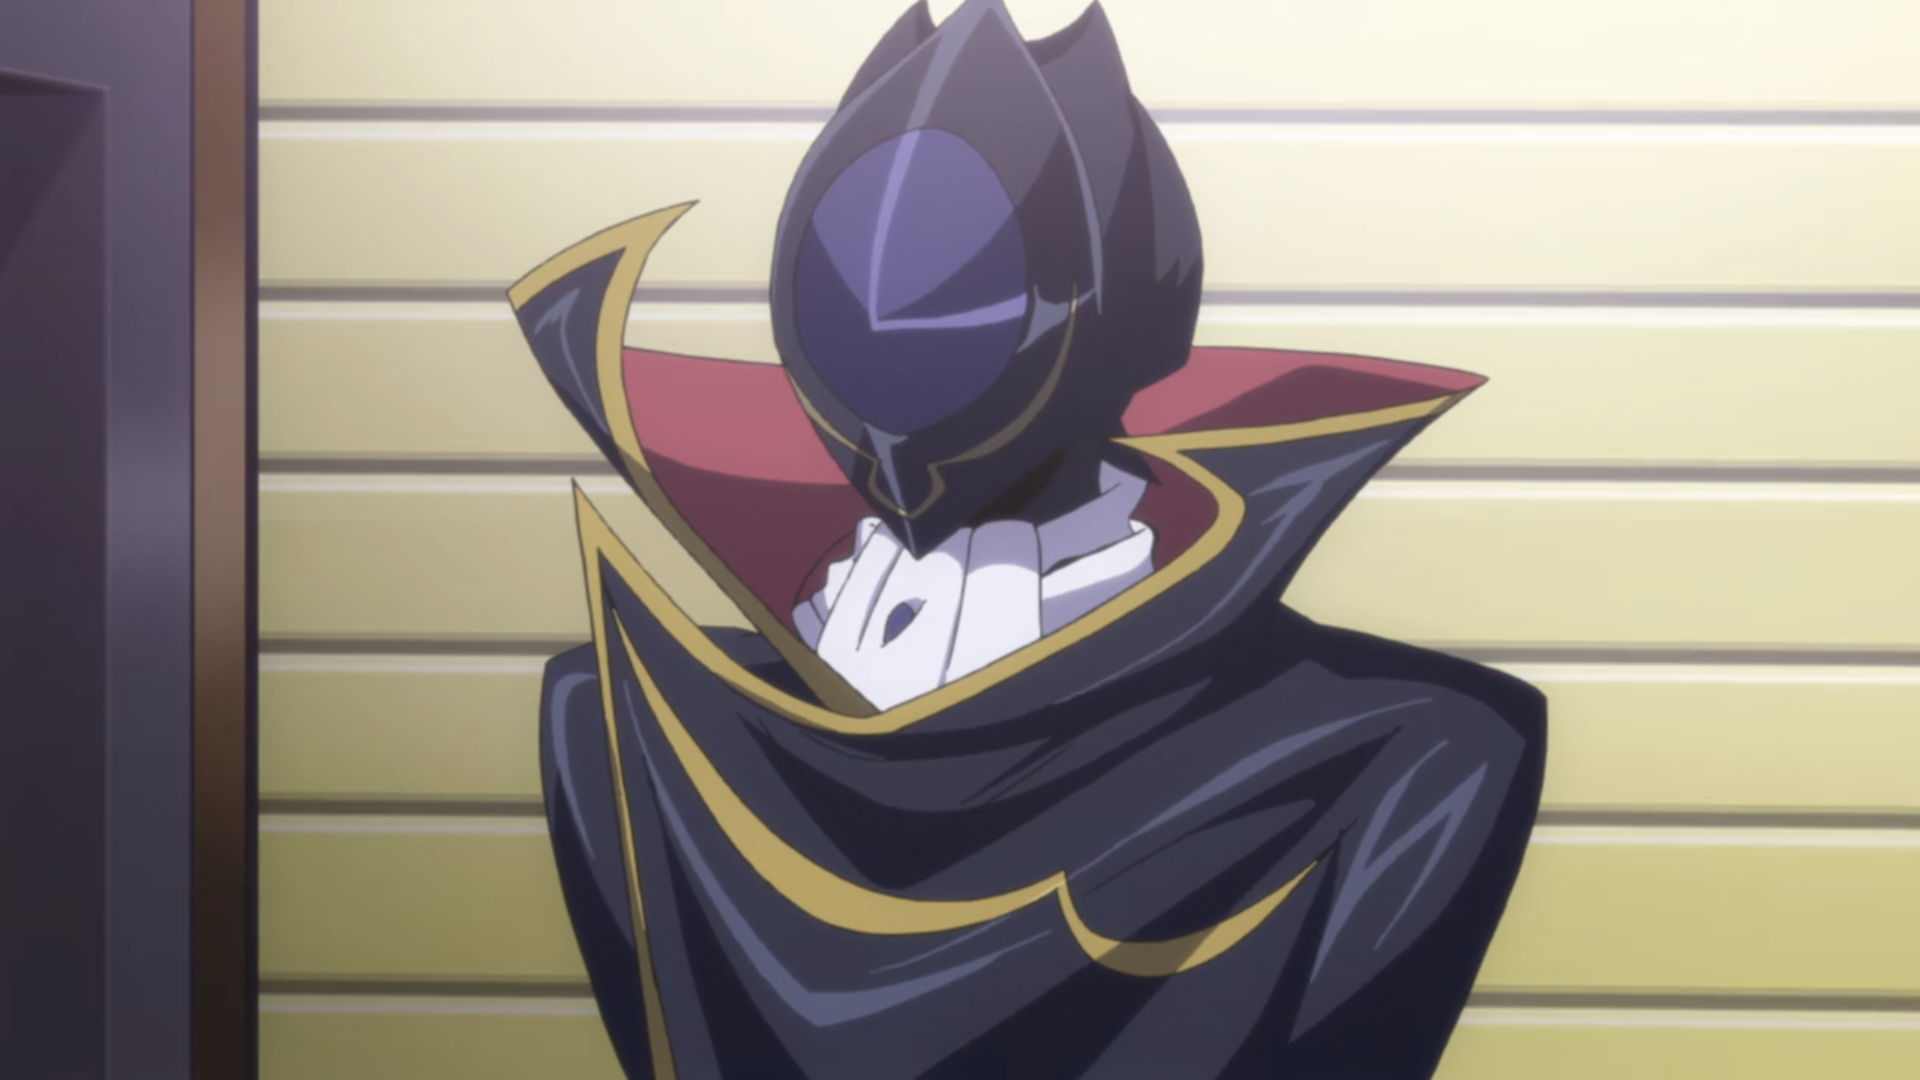 Lelouch from Code Geass, in his Zero alter ego